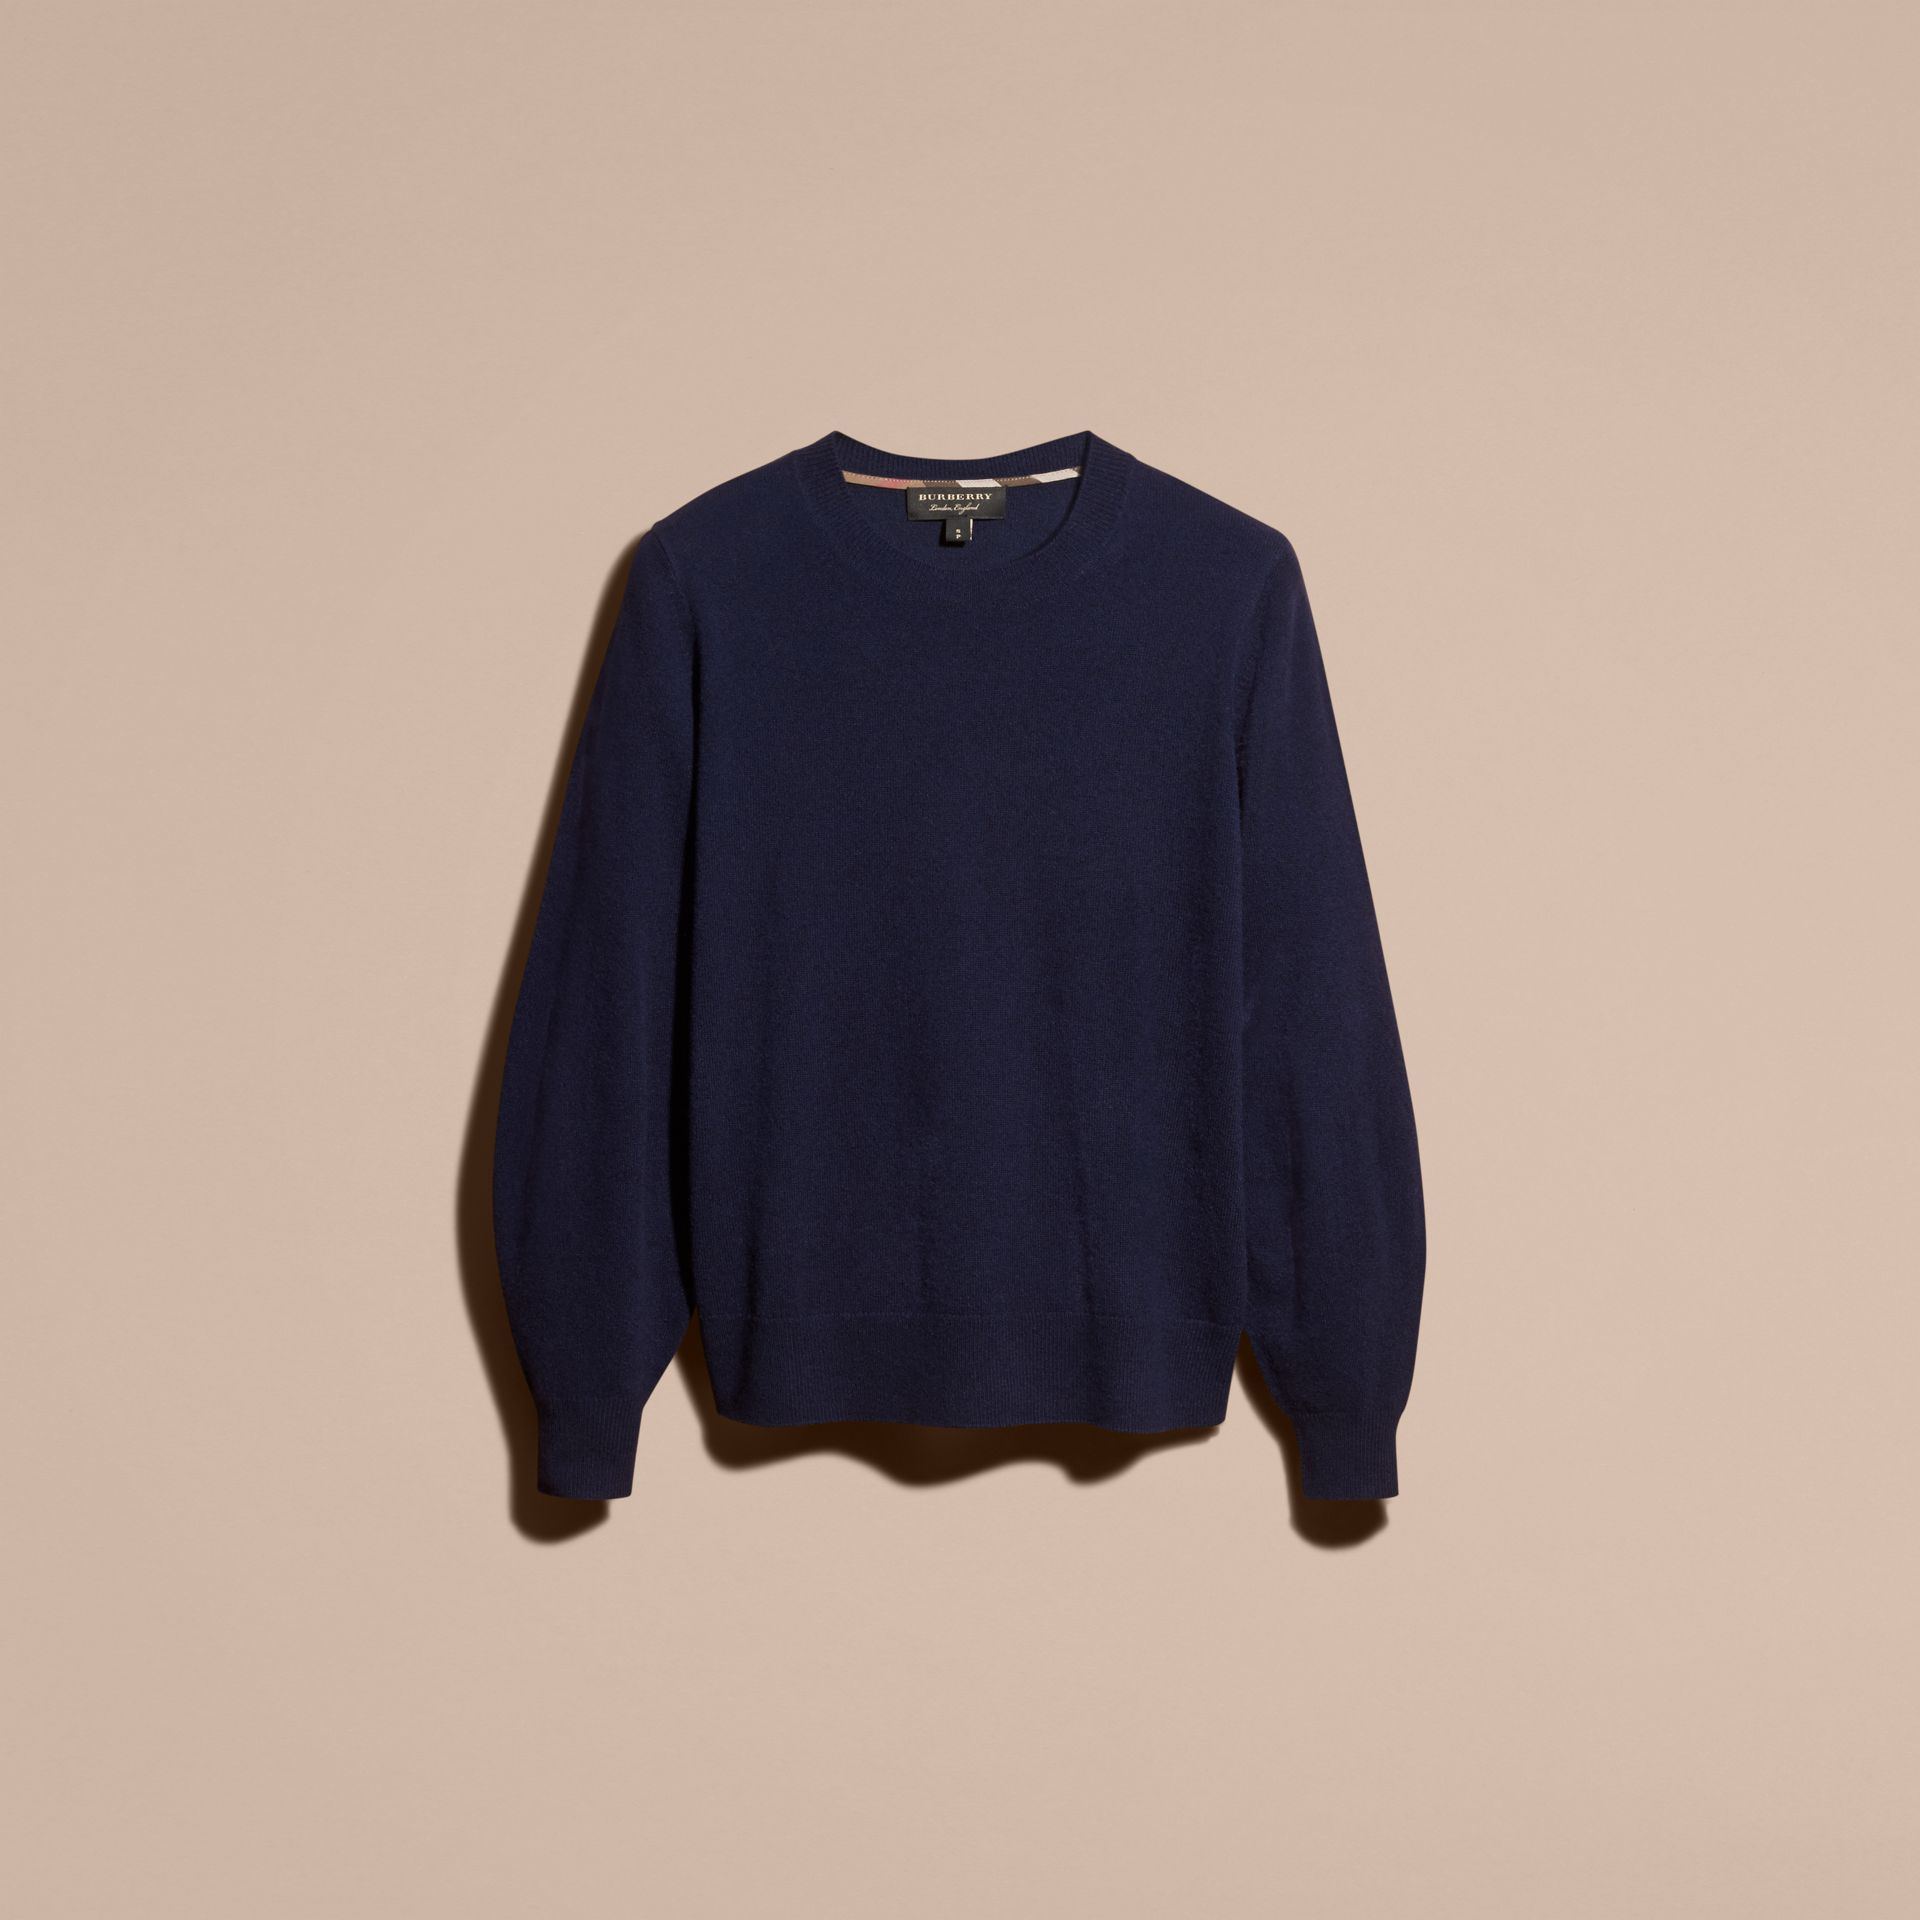 Navy Puff-sleeved Cashmere Sweater Navy - gallery image 3